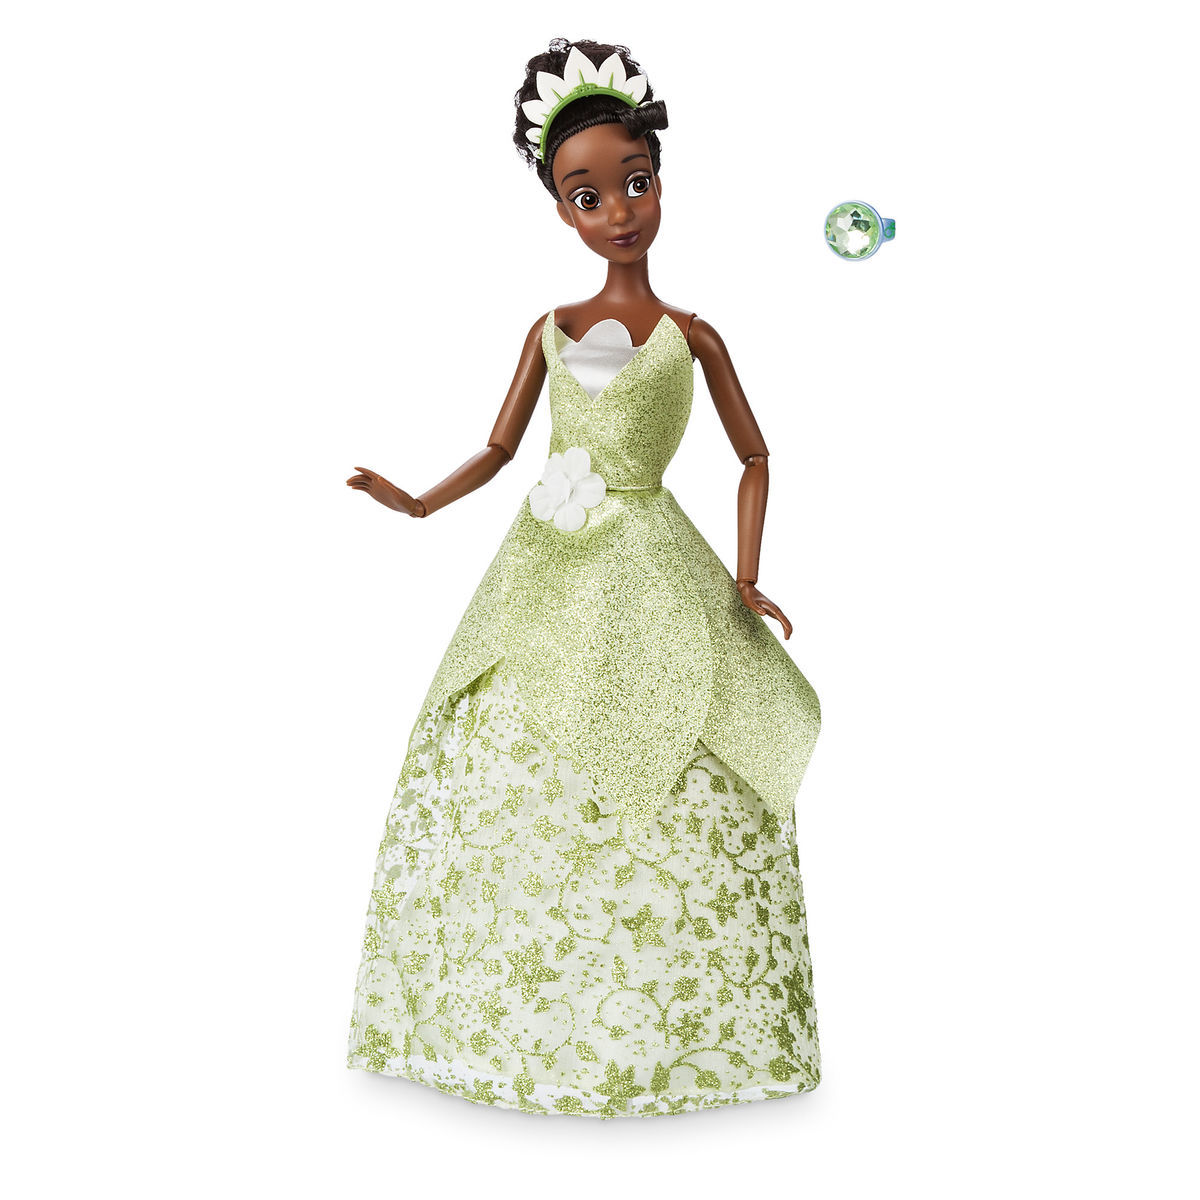 tiana classic doll with ring the princess and the frog 11 1 2